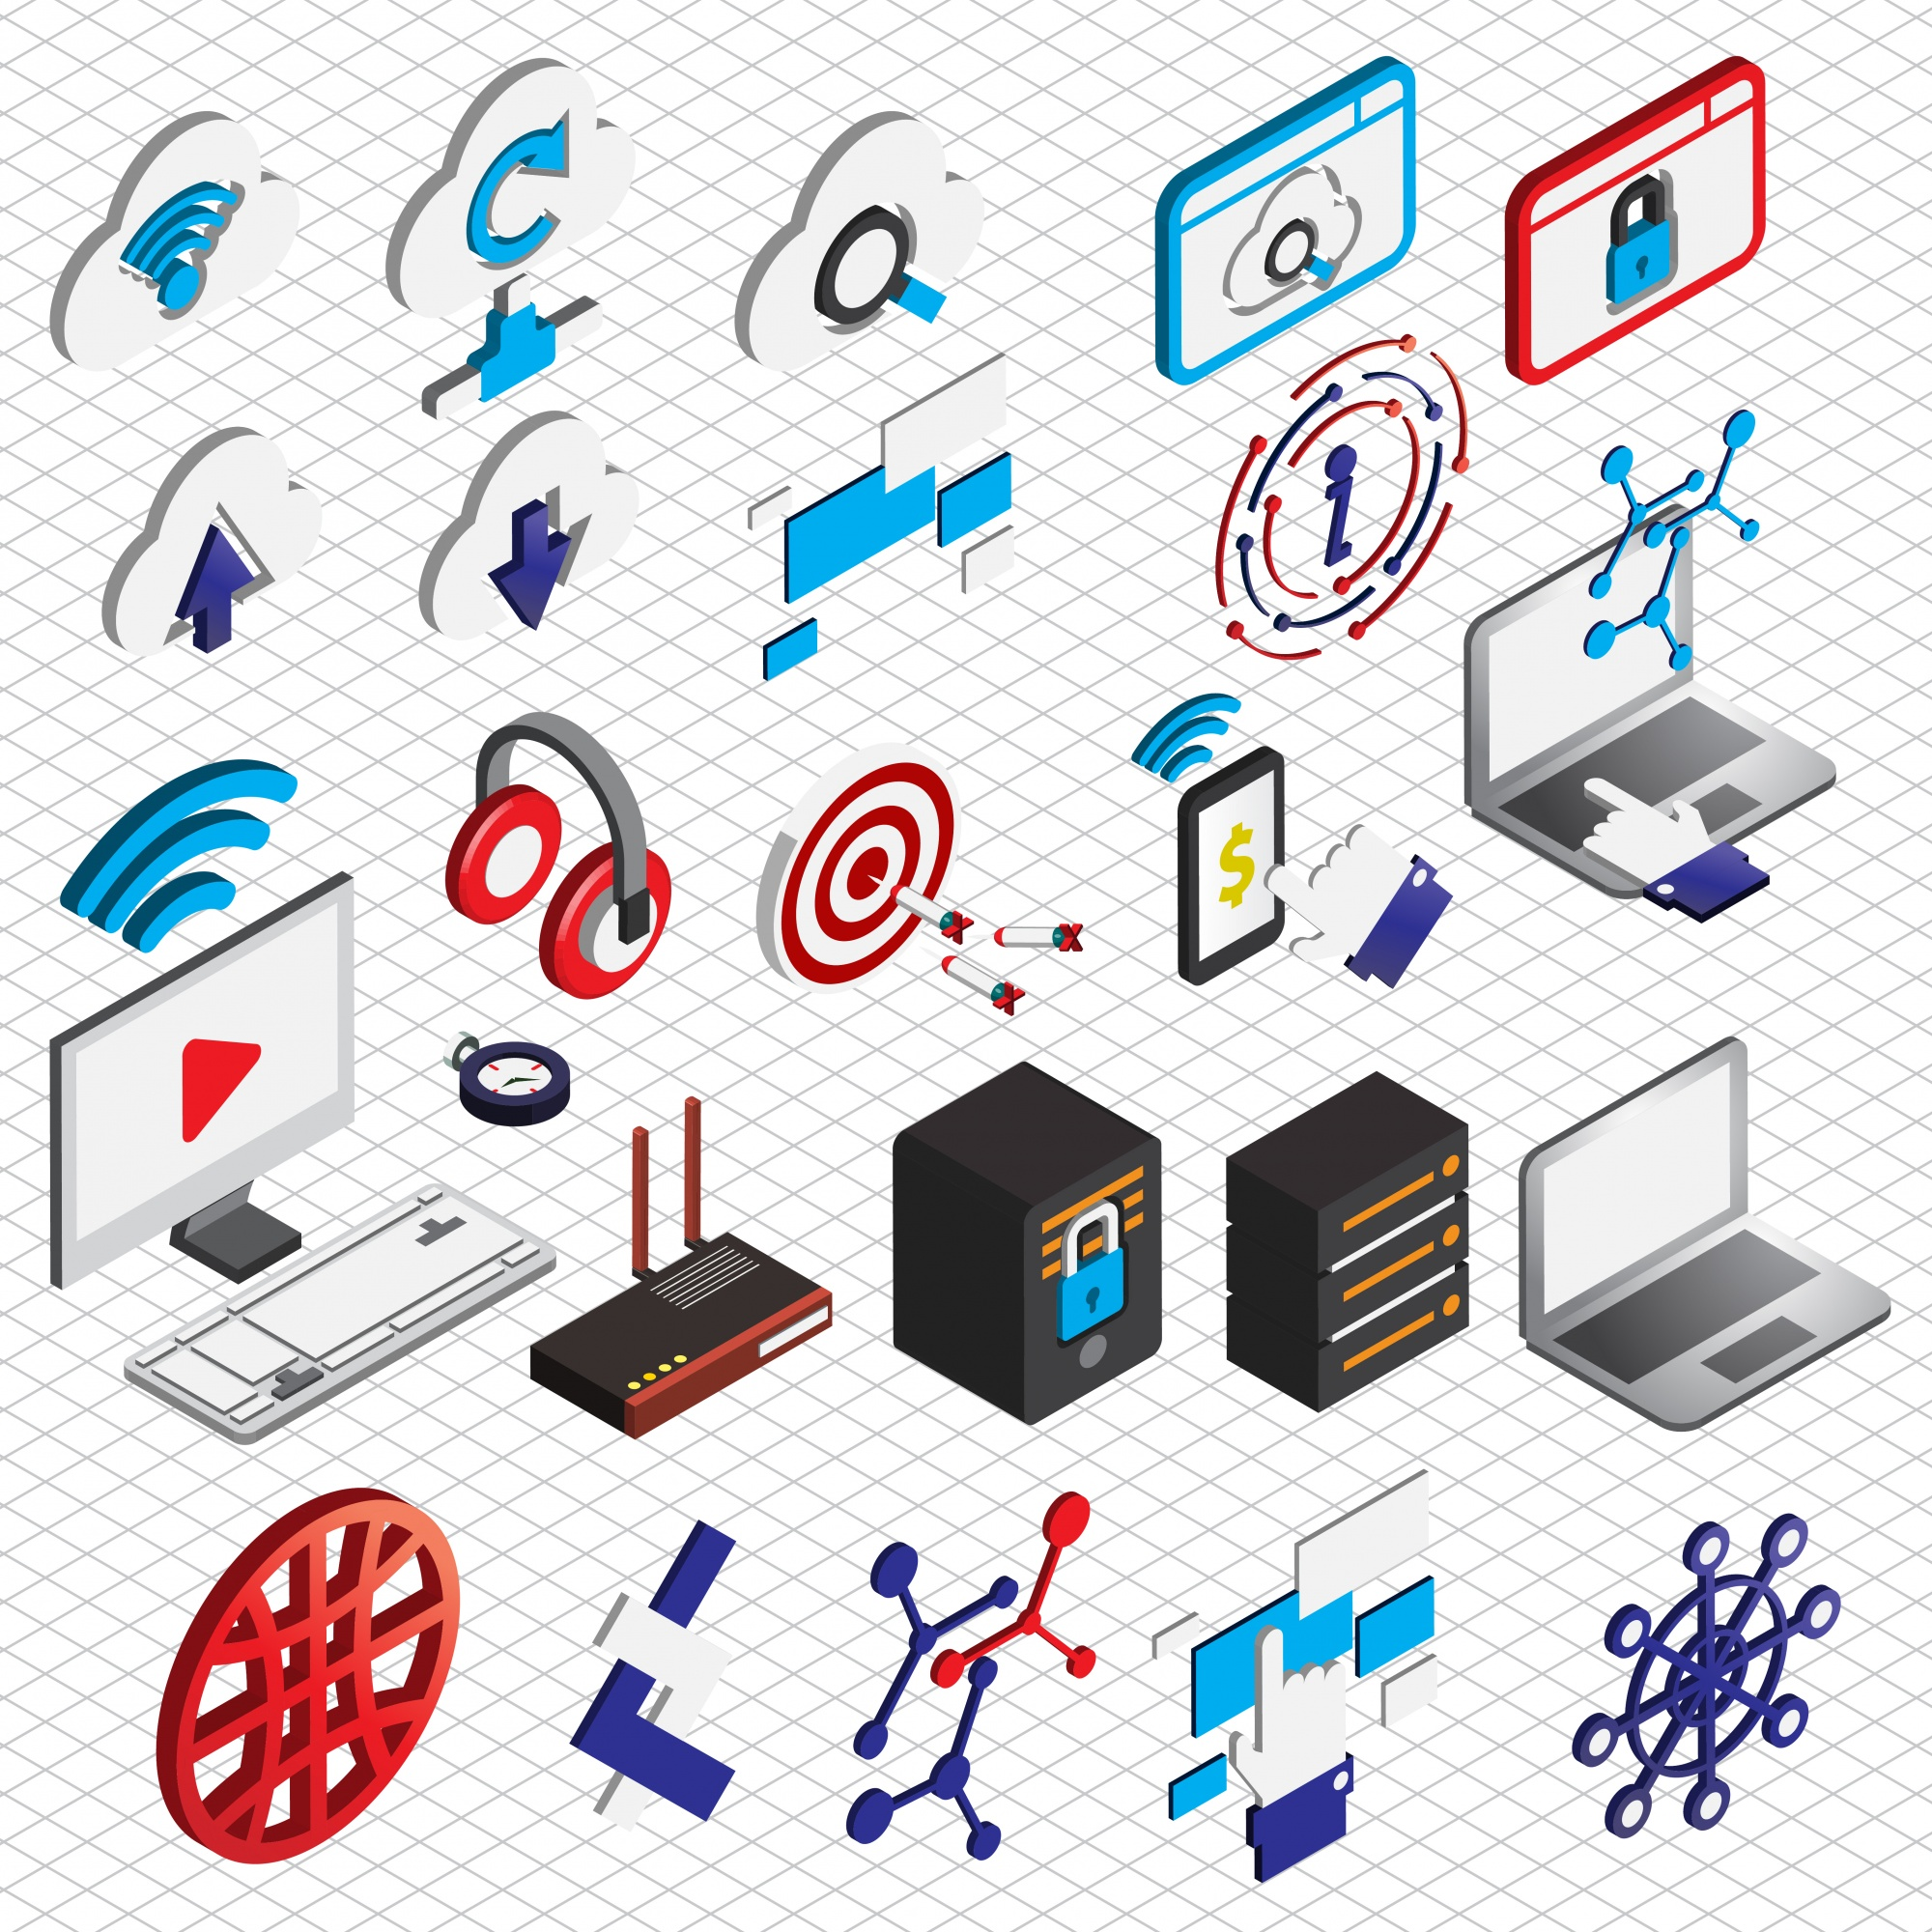 Illustration of computer icons set concept in isometric graphic